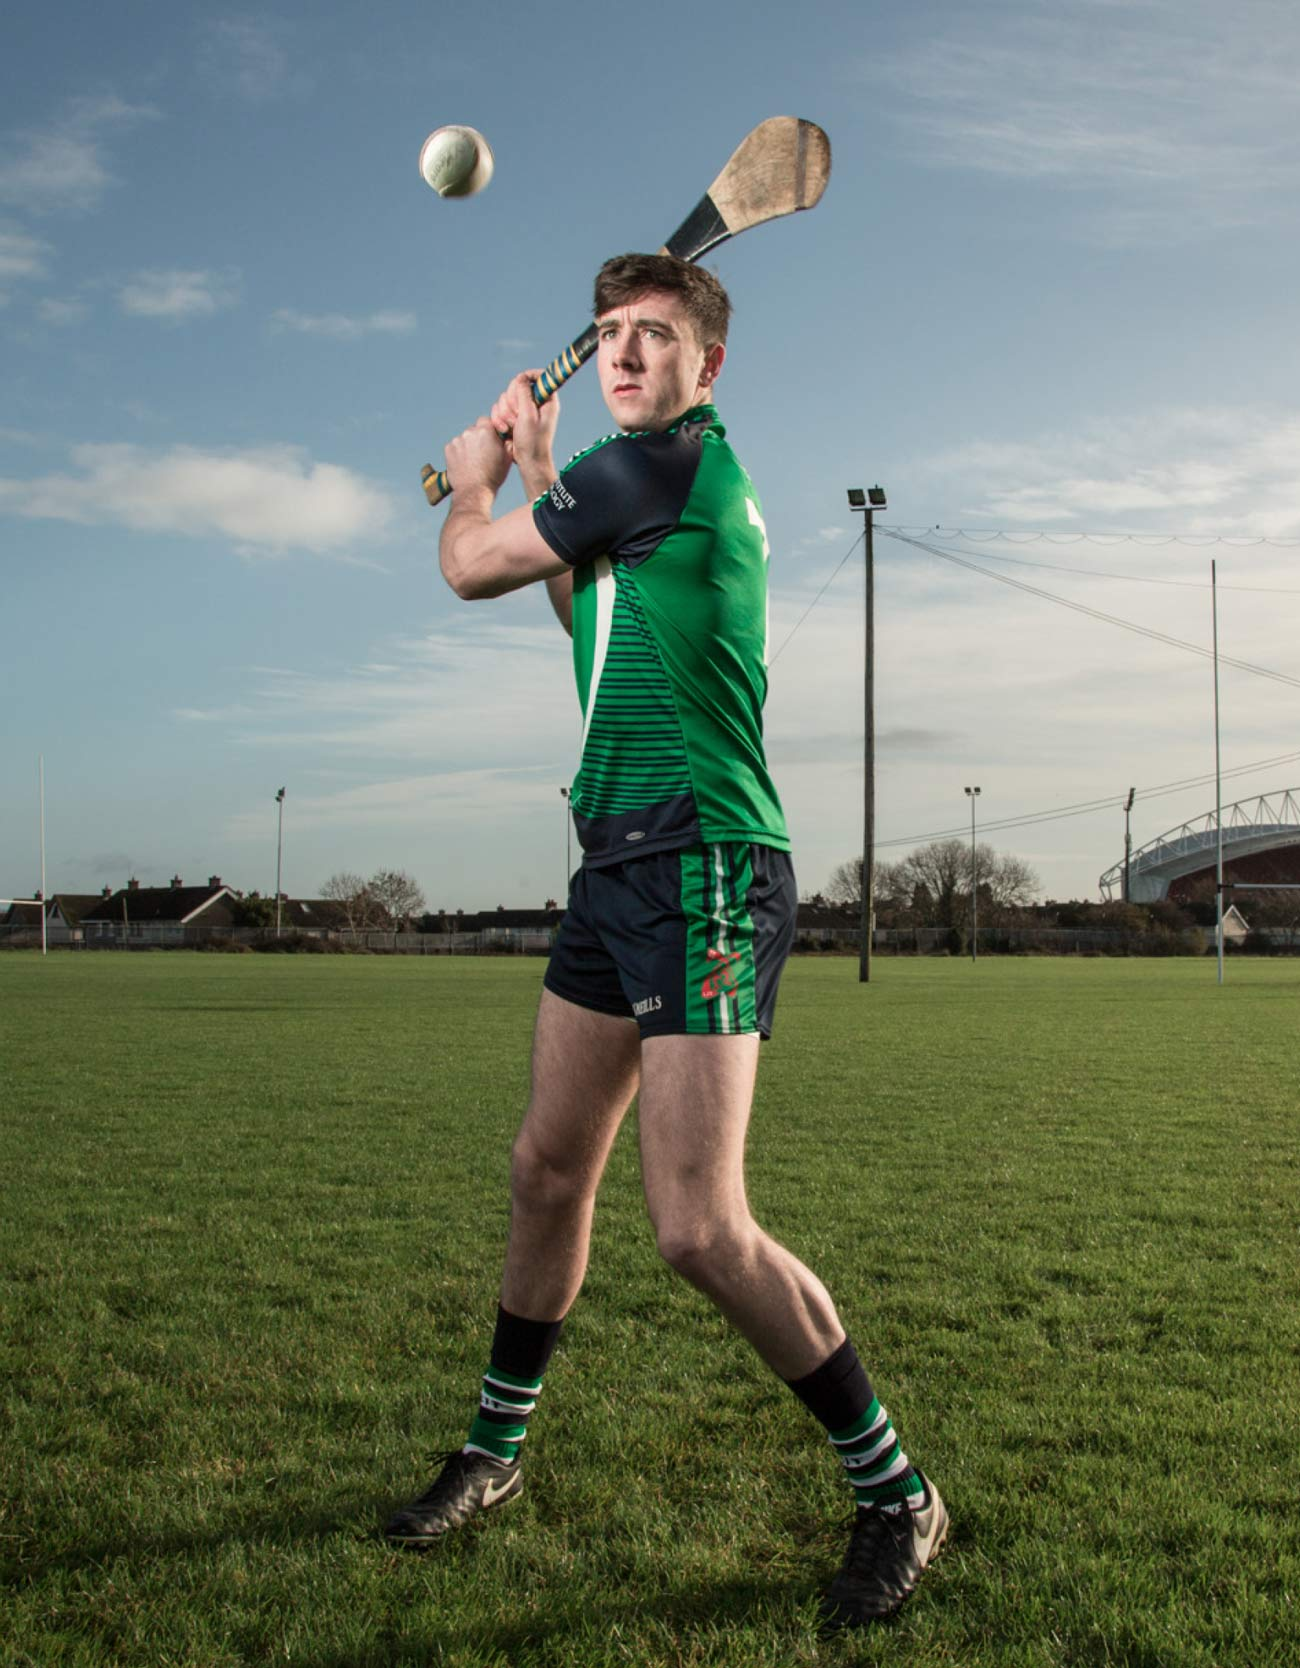 Video and photography production LIT hurler practicing on the pitch